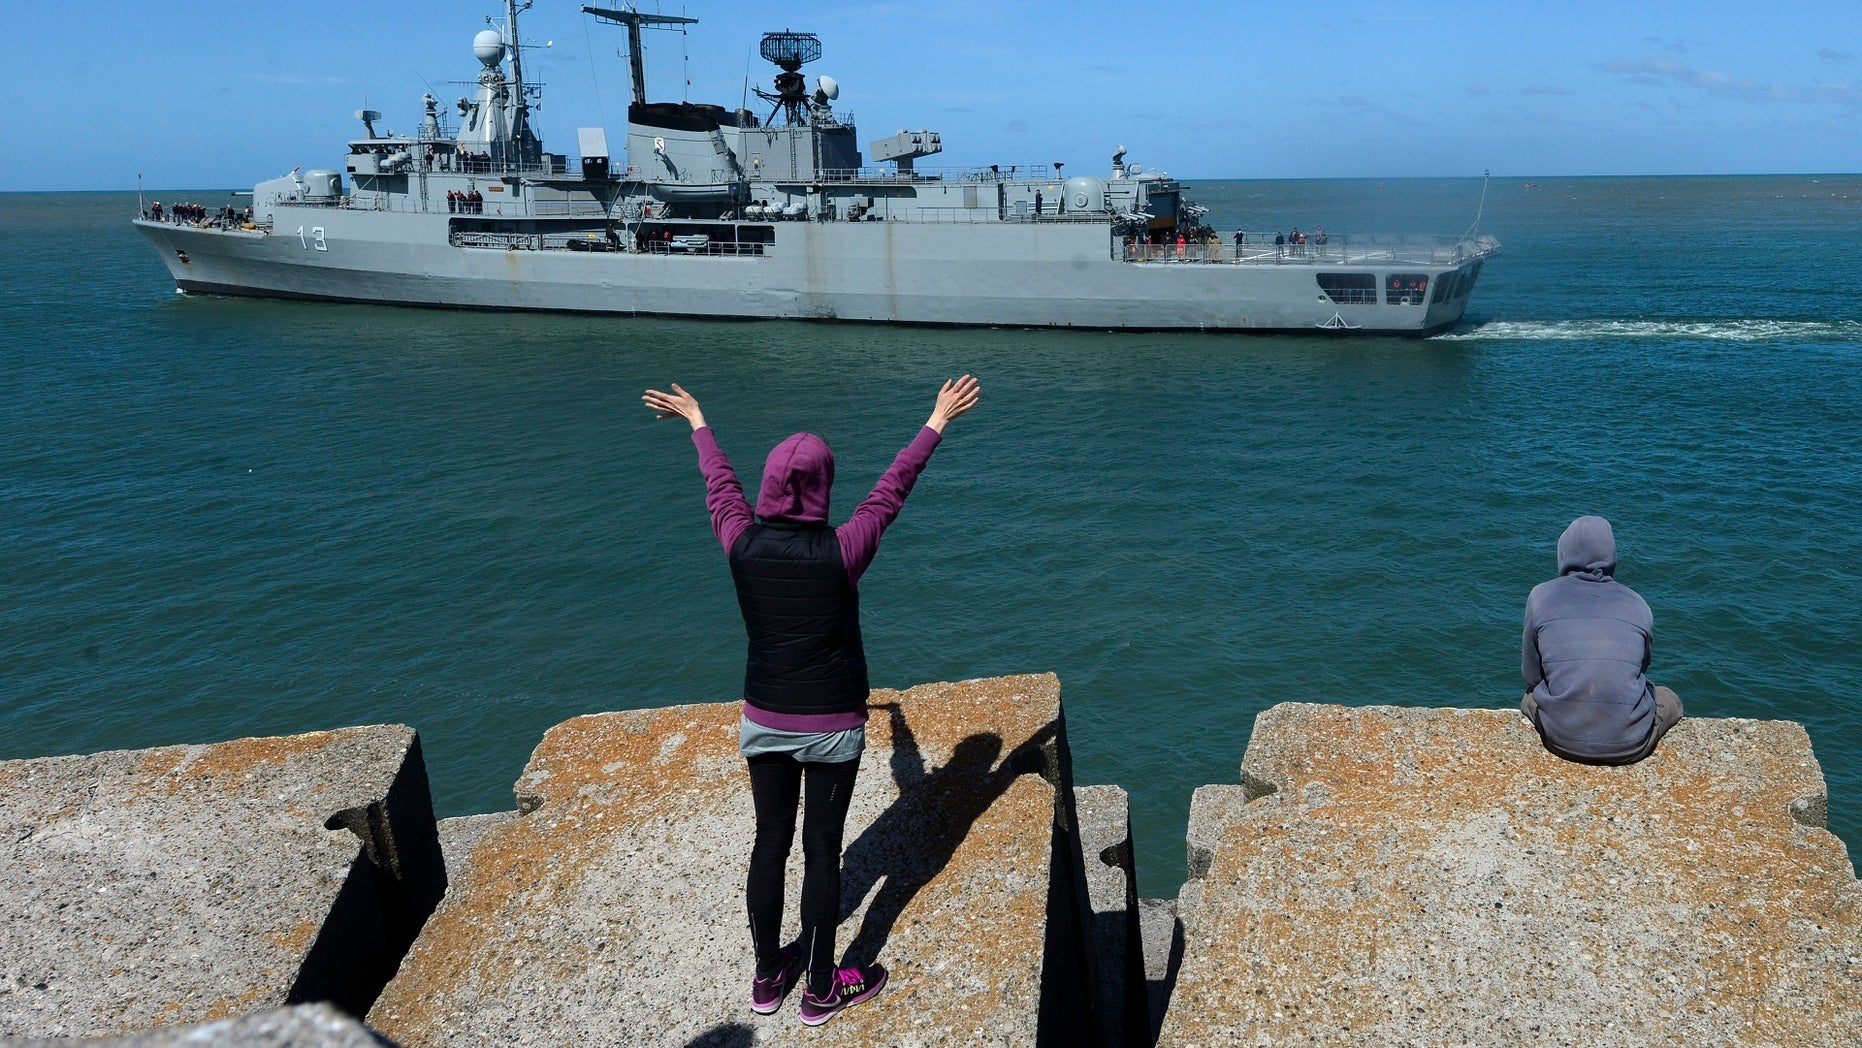 A person waves at the Argentine destroyer Sarandi as it leaves a Navy base in Mar del Plata, Argentina, to participate in the search of the missing submarine, Tuesday, Nov. 21, 2017. The search continues for the missing submarine, with 44 crew members, that has been lost since Nov. 15 in the South Atlantic. (AP Photo/Marina Devo)